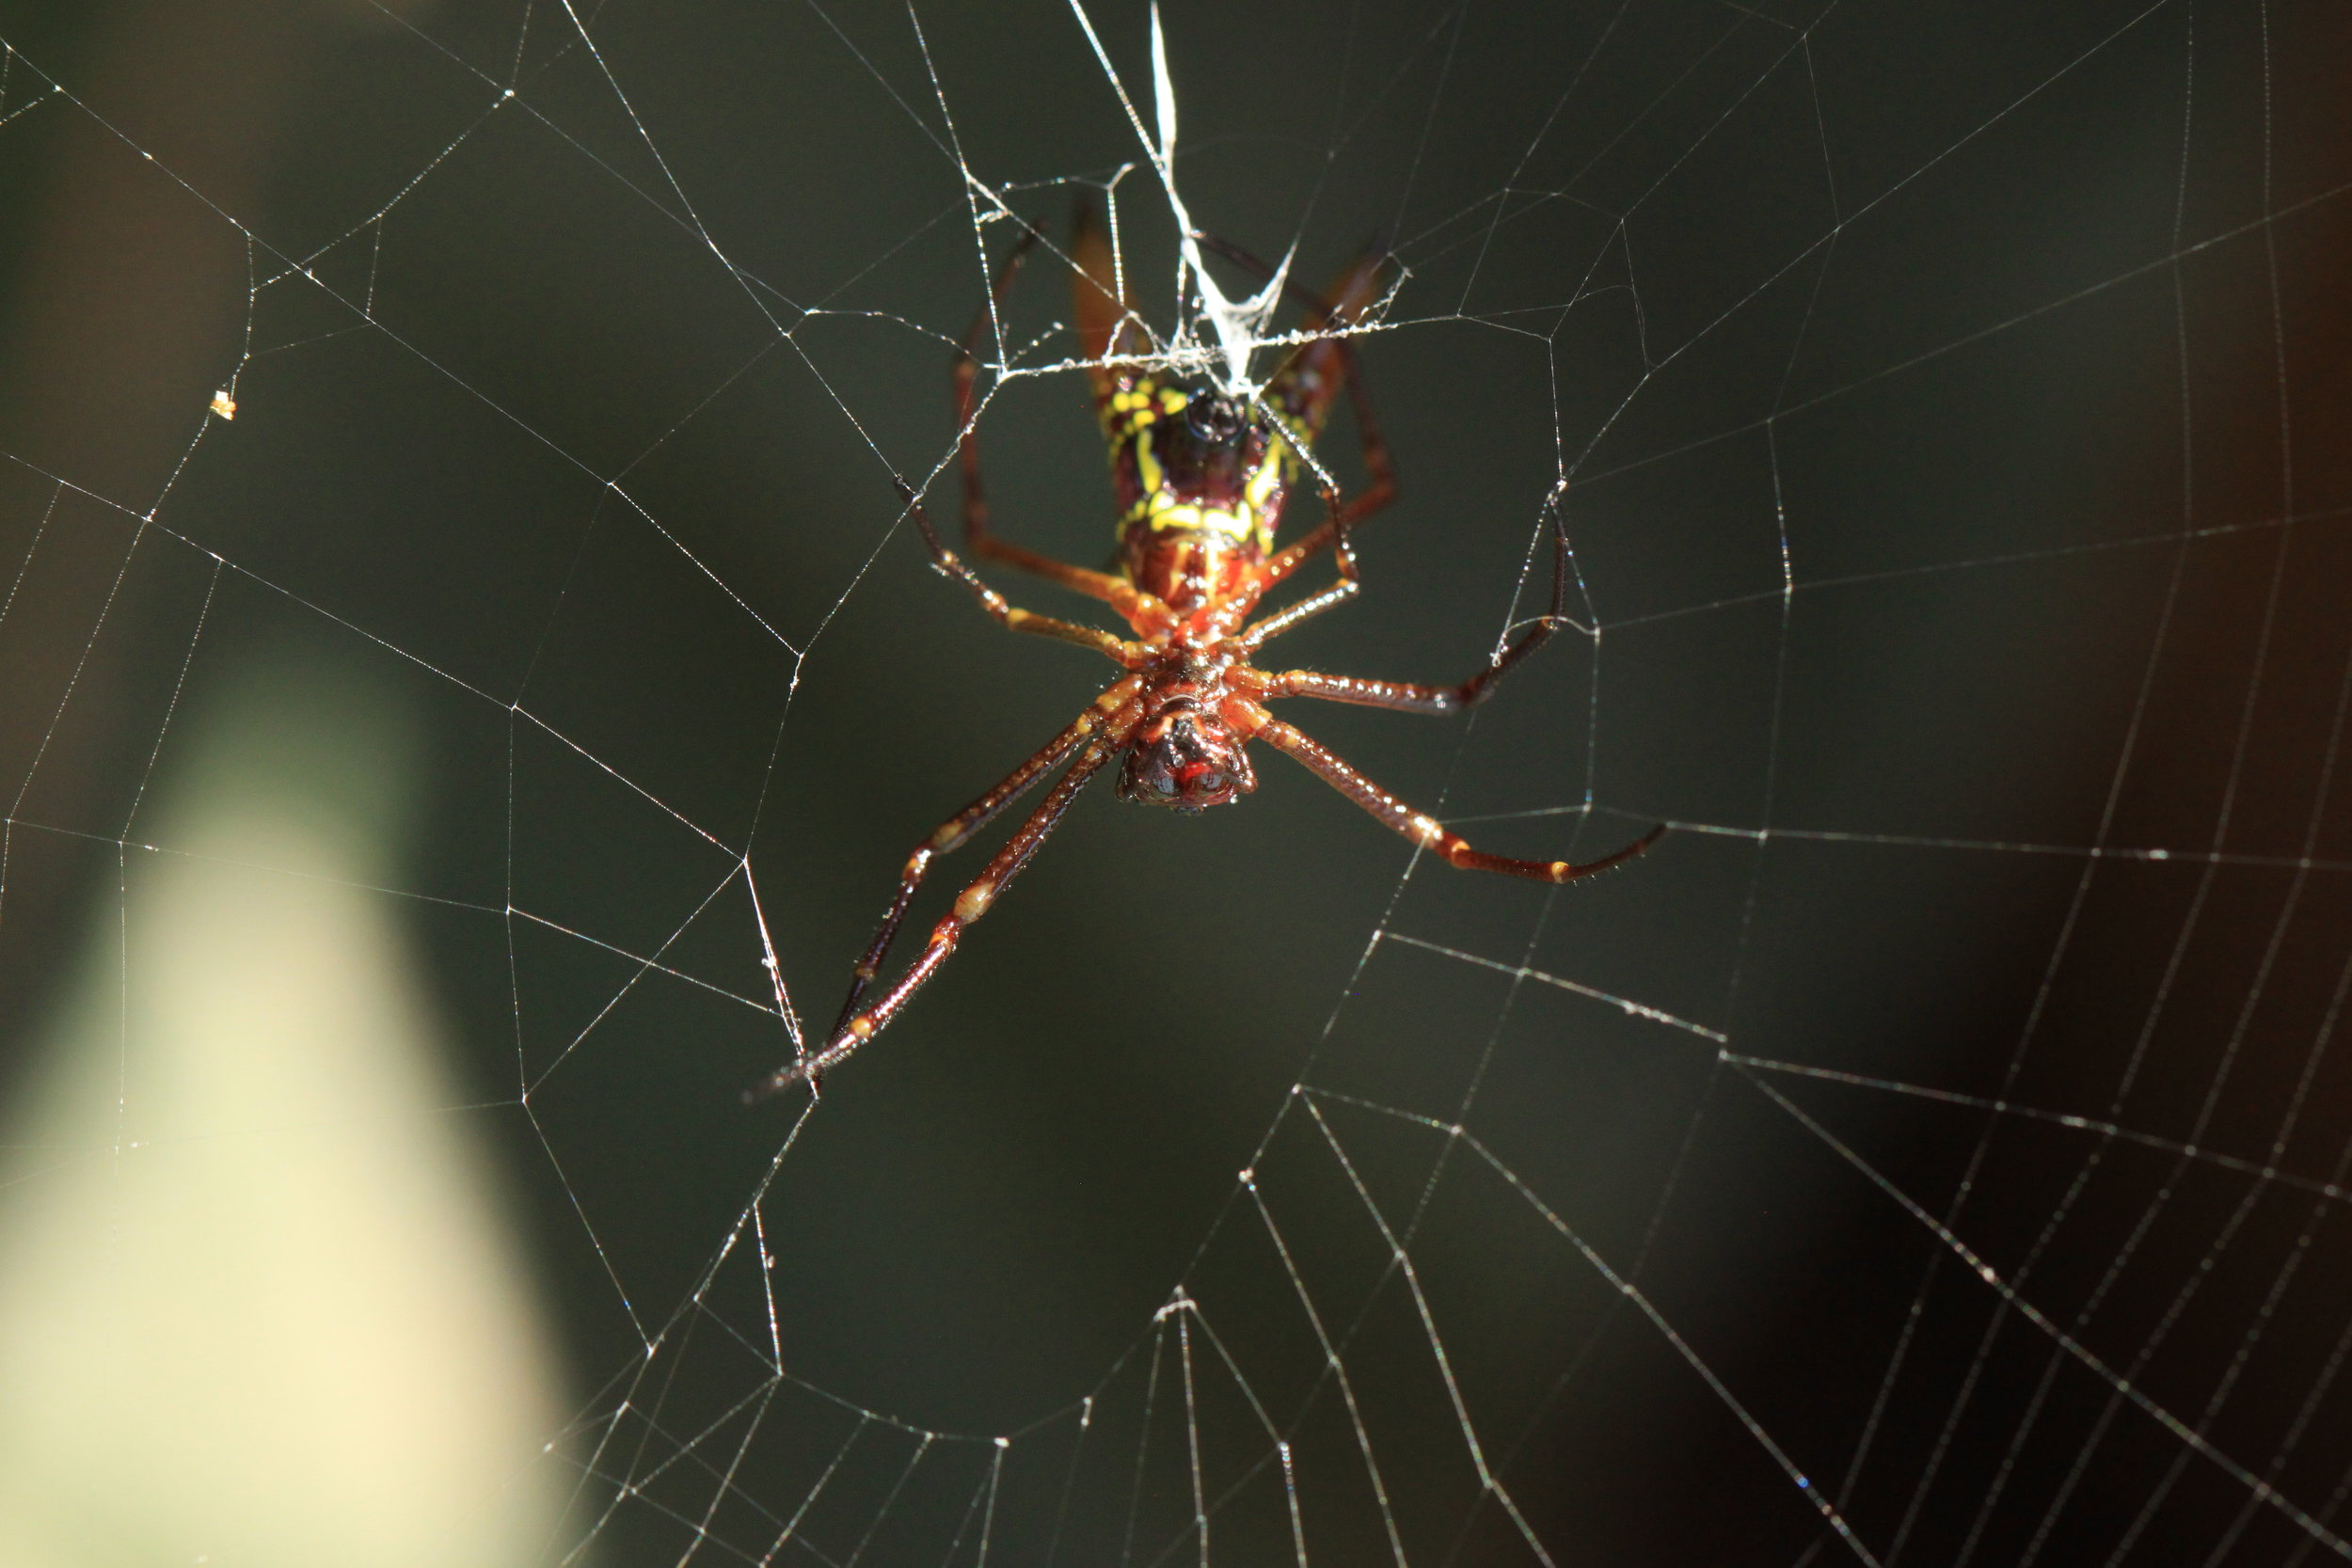 arrowhead-spider-spinning-web.jpg